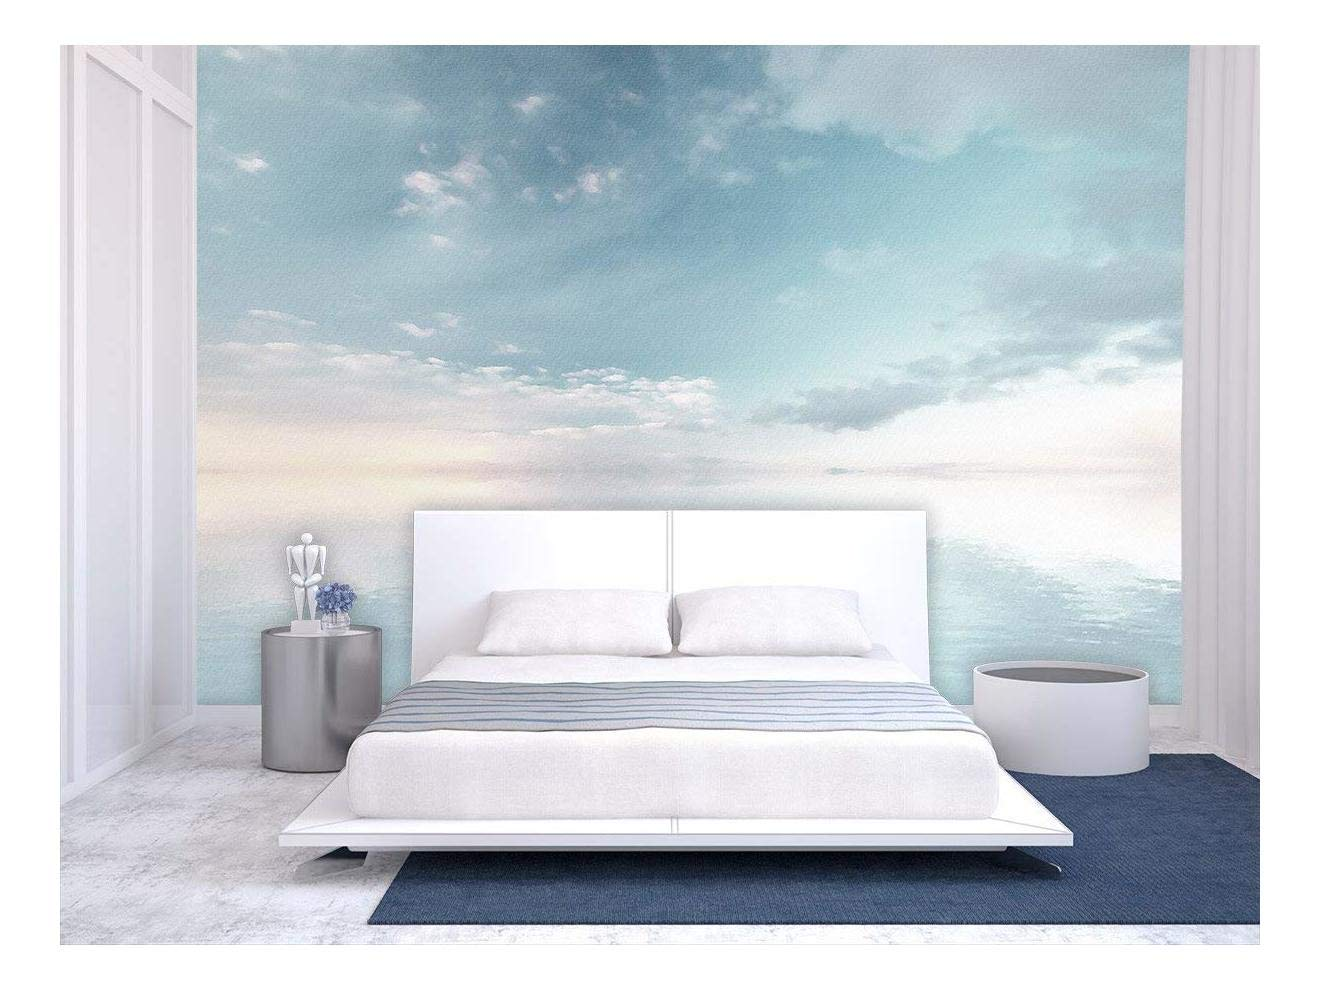 wall26 - Large Wall Mural - Oil Painting Style Landscape with Sky Reflected on The Calm Water Surface   Self-Adhesive Vinyl Wallpaper/Removable Modern Wall Decor - 100x144 inches